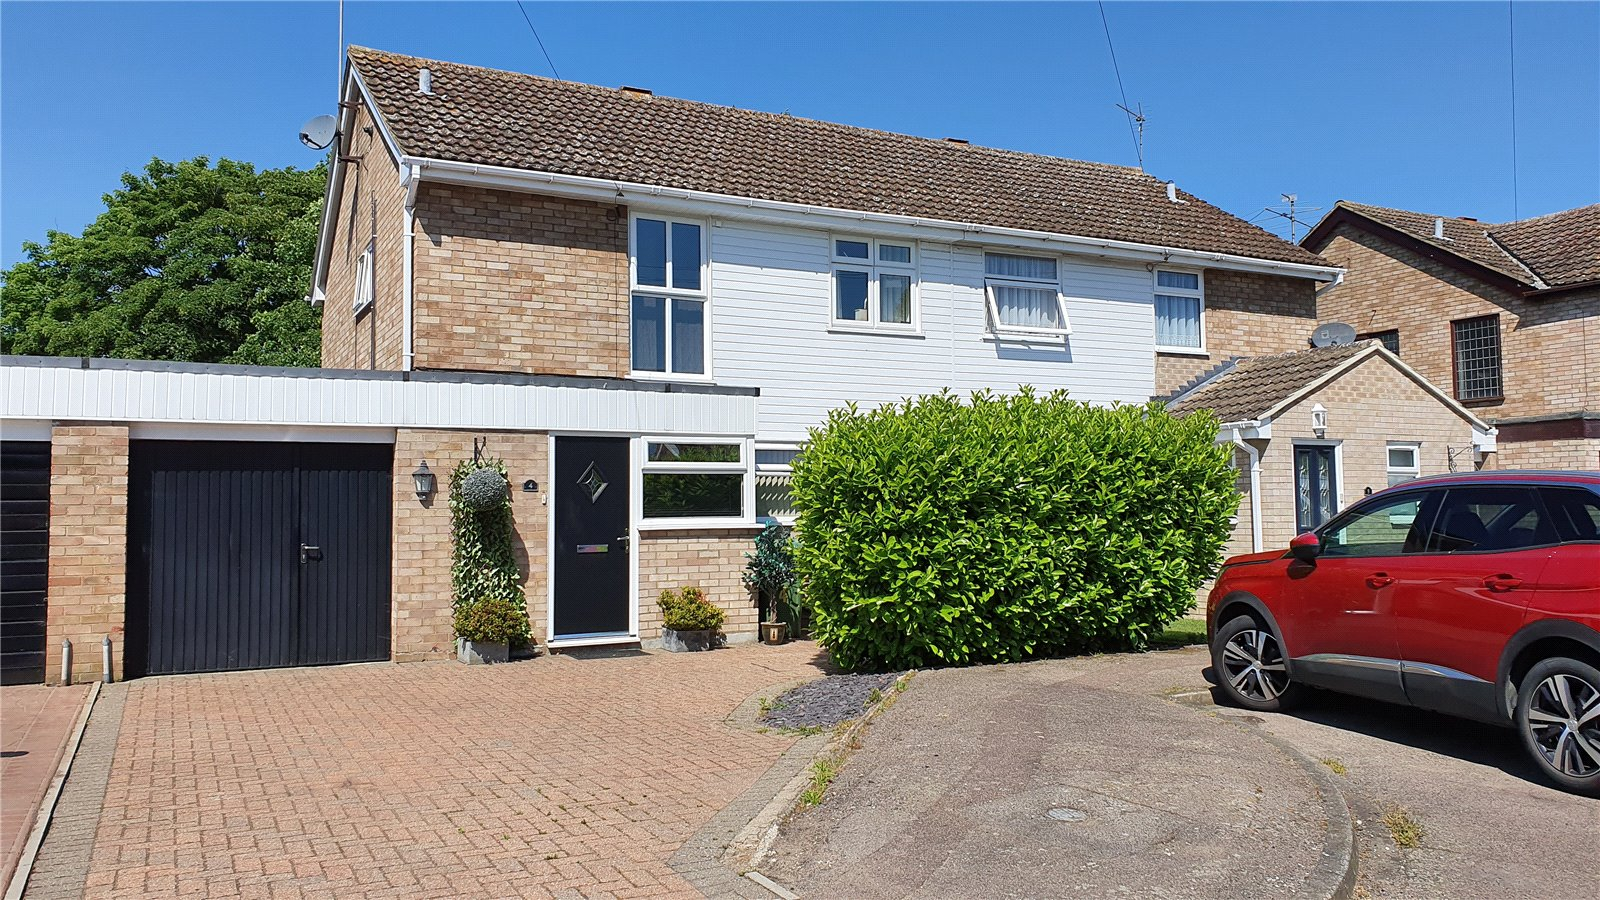 3 bed house for sale in Eaton Socon, Hathaway Close, PE19 8HQ - Property Image 1